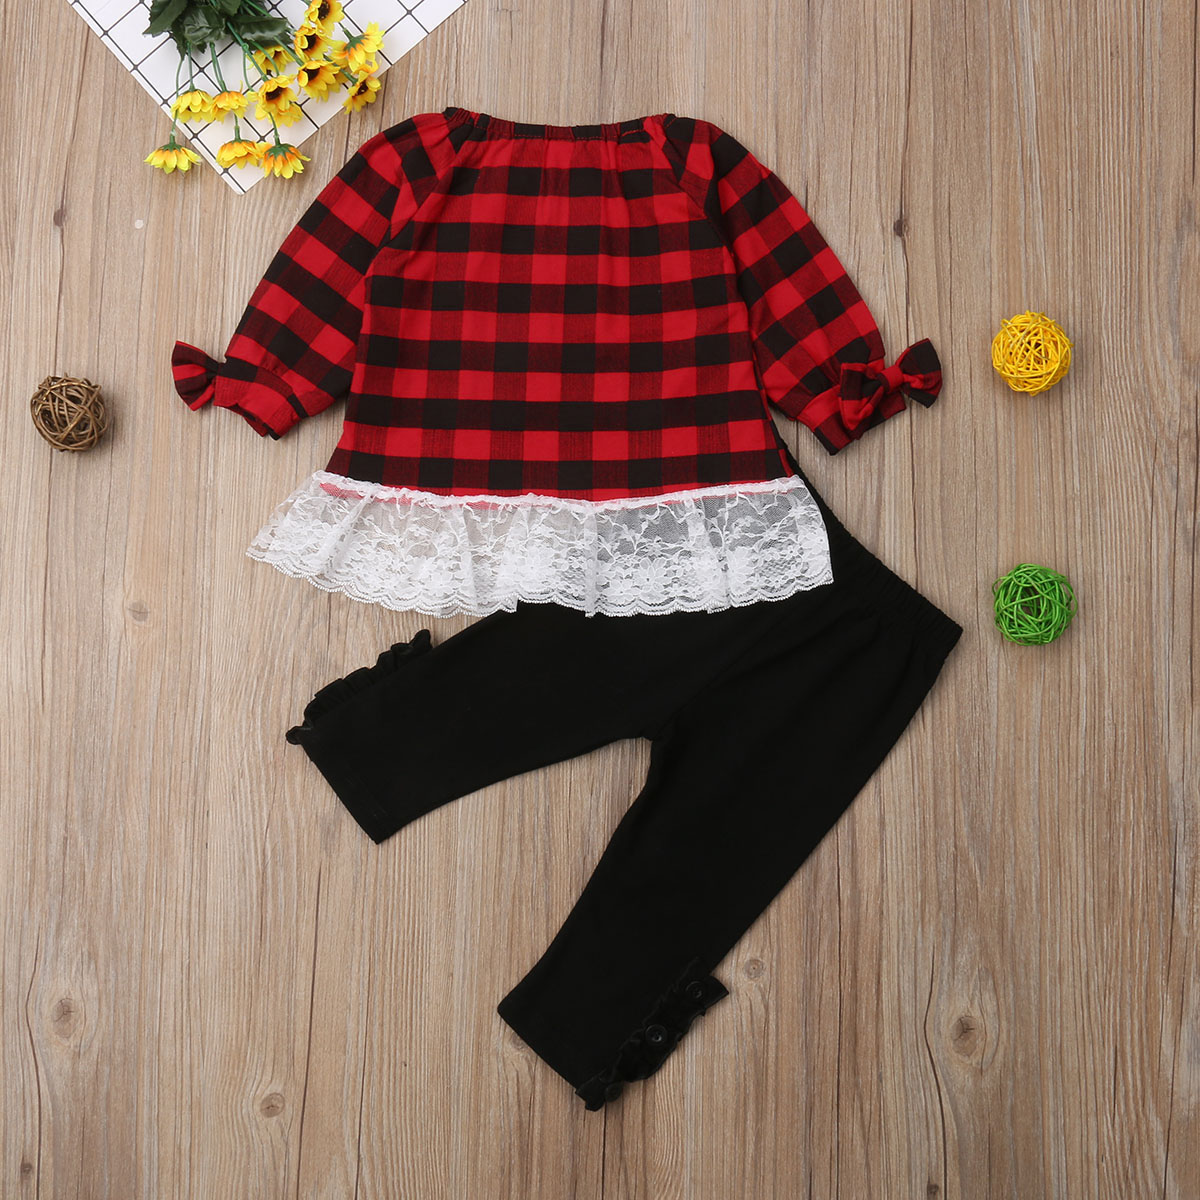 Christmas Toddler Kids Baby Girls Plaids Lace Patchwork Tops Long Sleeve T shirt Pants Outfits Clothes Set 2019 in Clothing Sets from Mother Kids